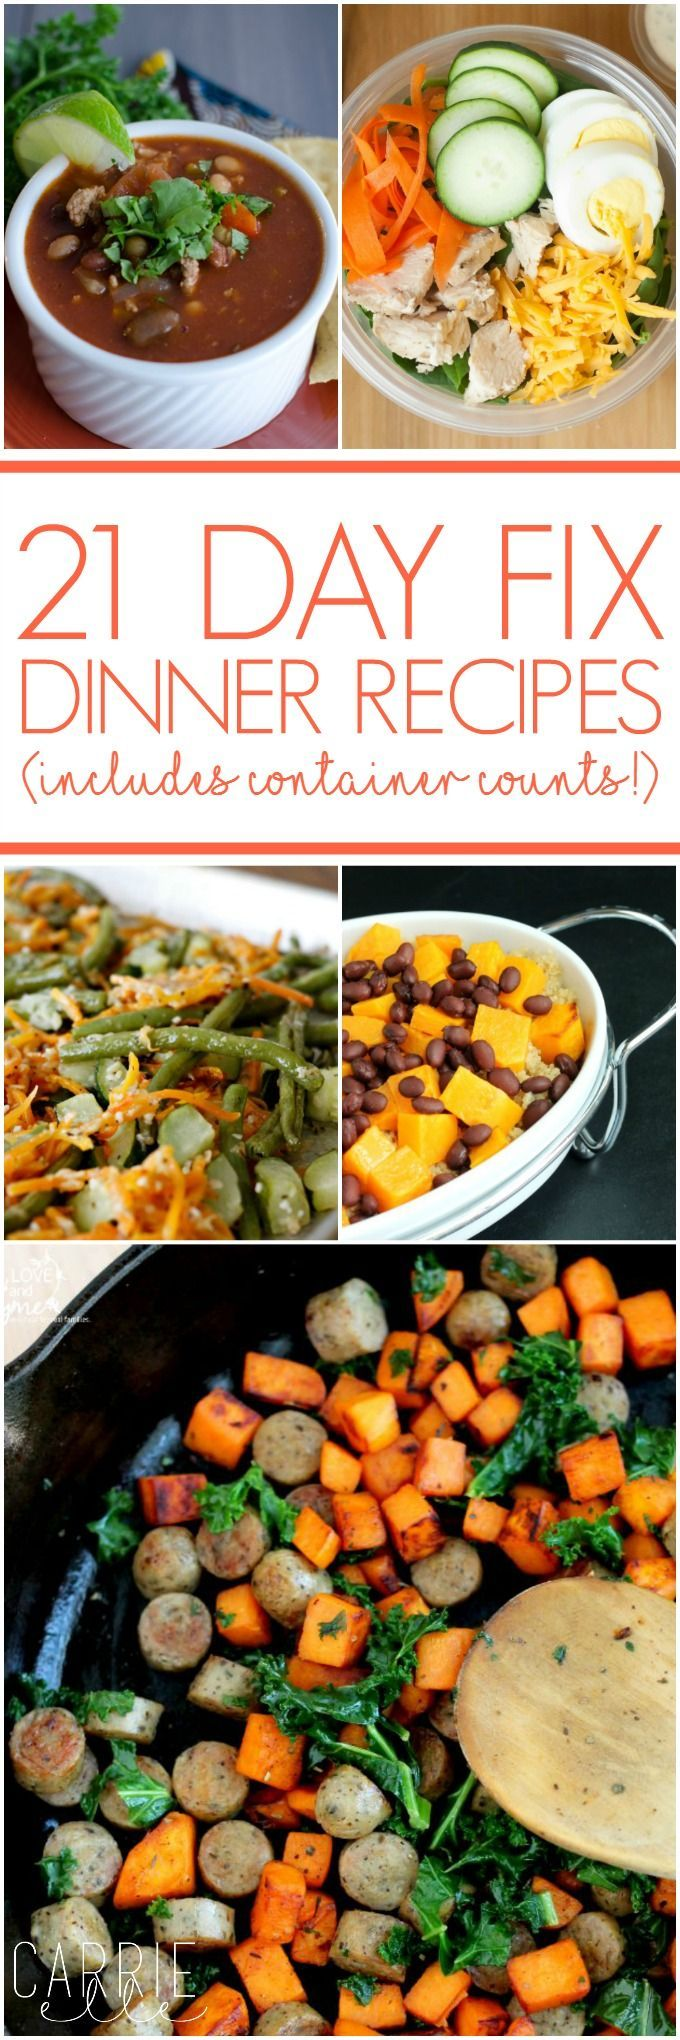 Lots of 21 Day Fix Dinner Recipes - never have the same thing twice! These are all quick and easy 21 Day Fix dinner recipes and some healthy side dishes, too - plus, the container counts are listed for each recipe!